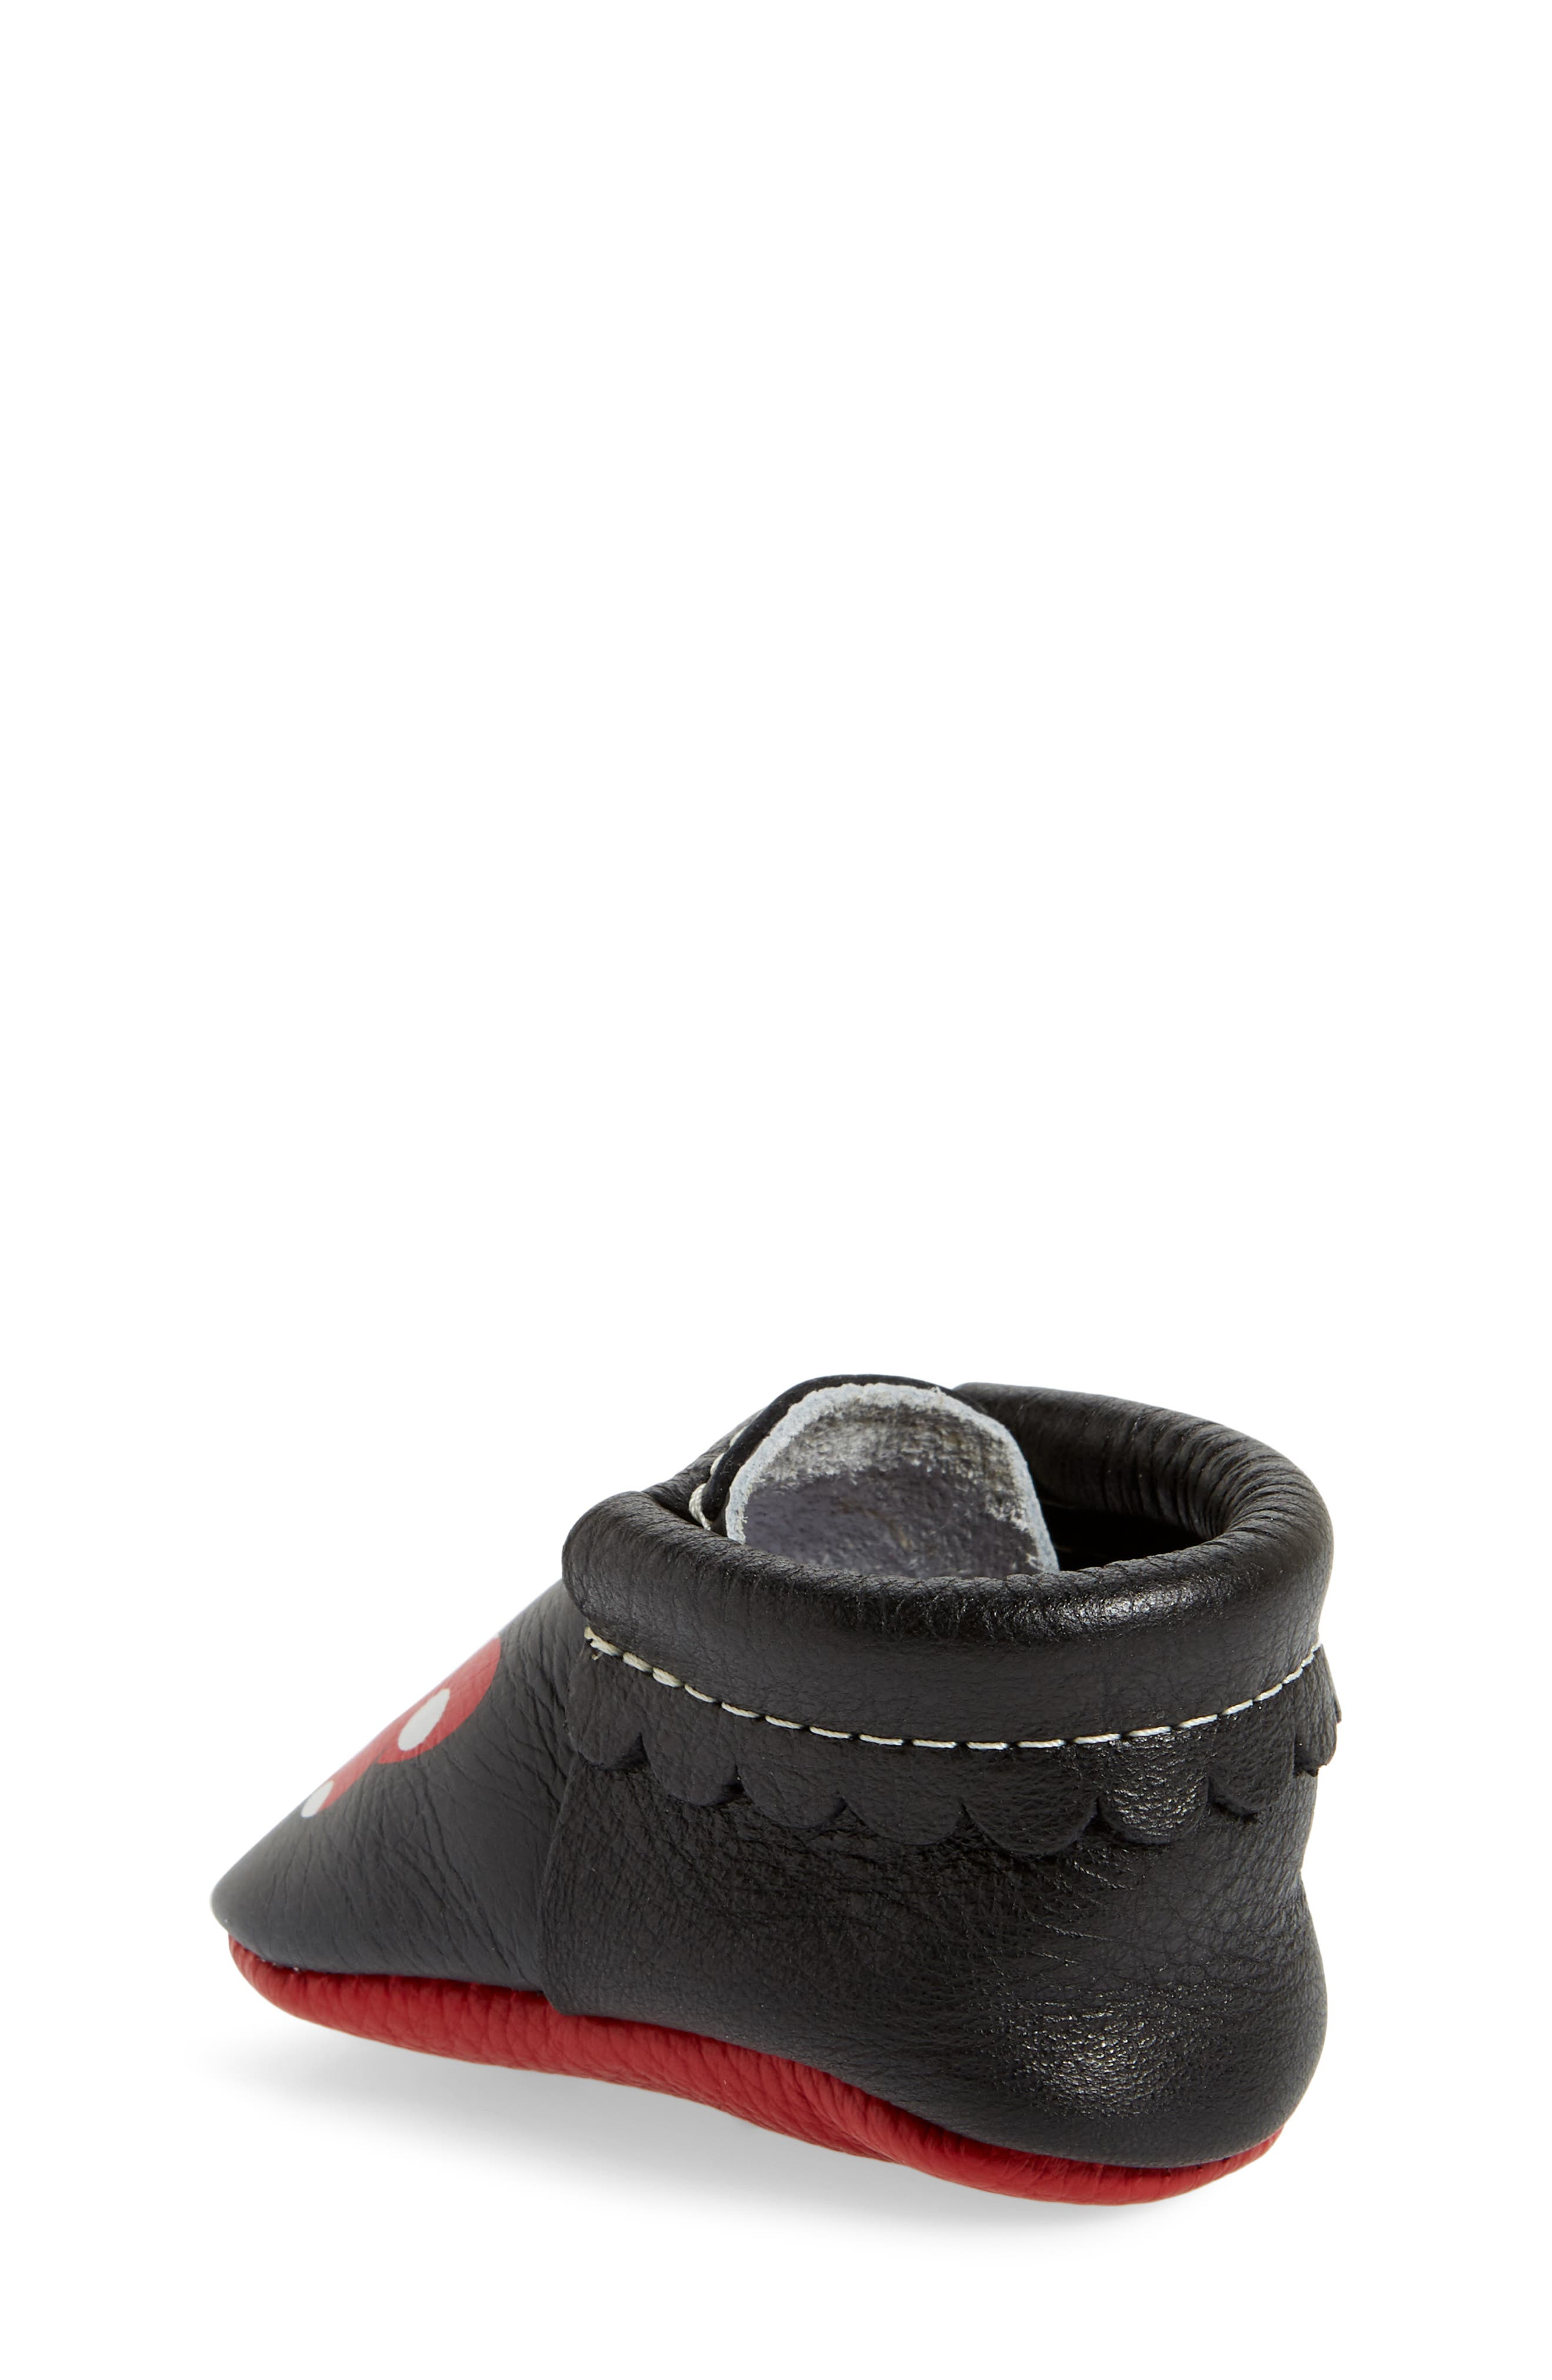 x Disney<sup>®</sup> Baby Minnie Mouse Crib Moccasin,                             Alternate thumbnail 2, color,                             001